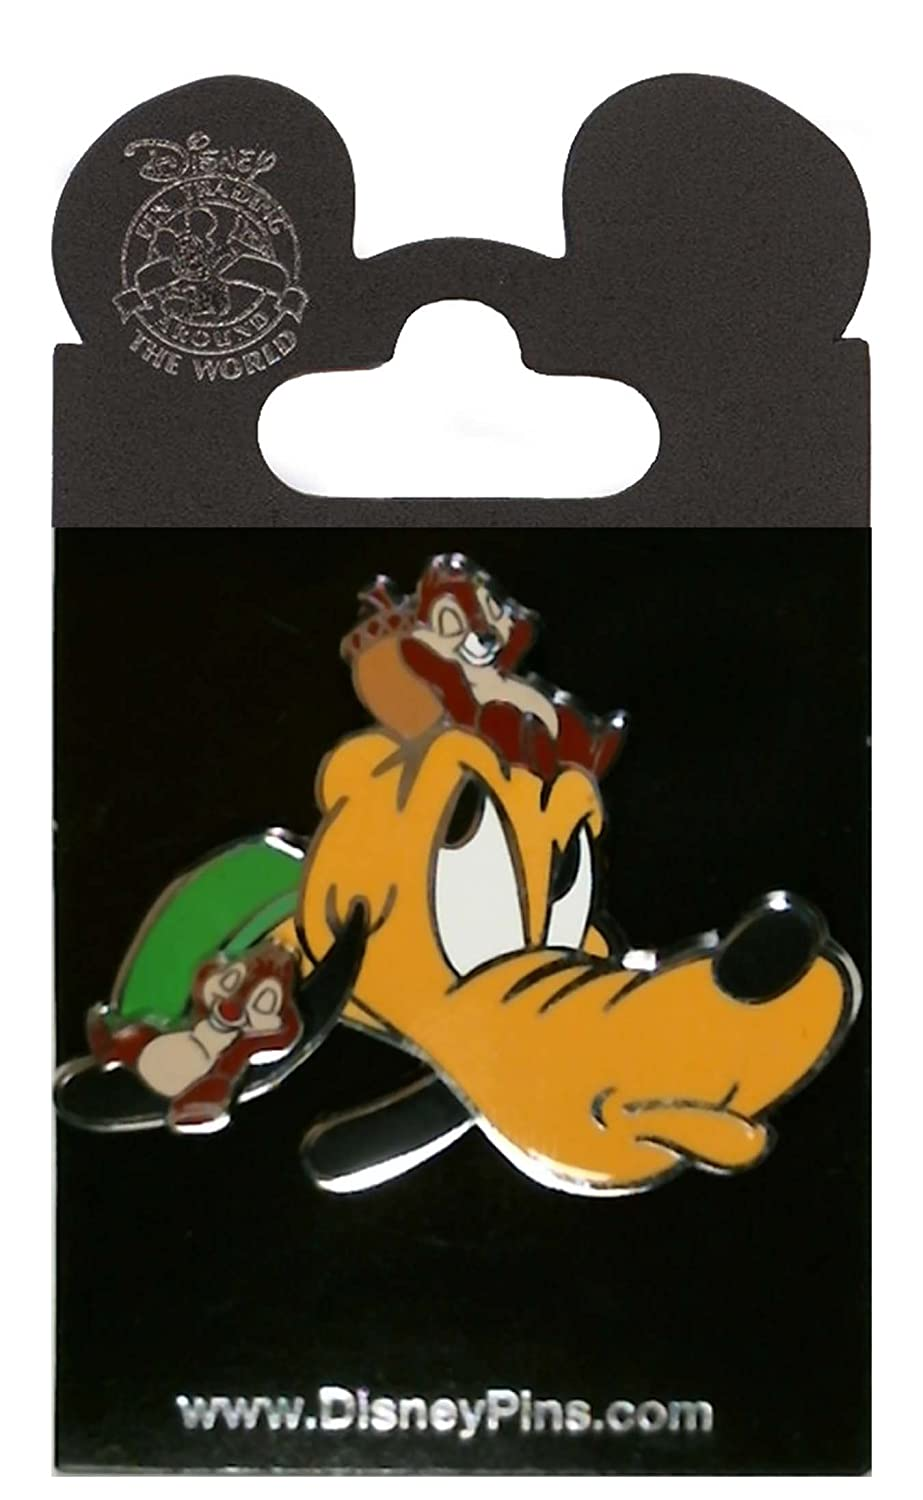 Disney Pin - Pluto with Chip and Dale on his Head